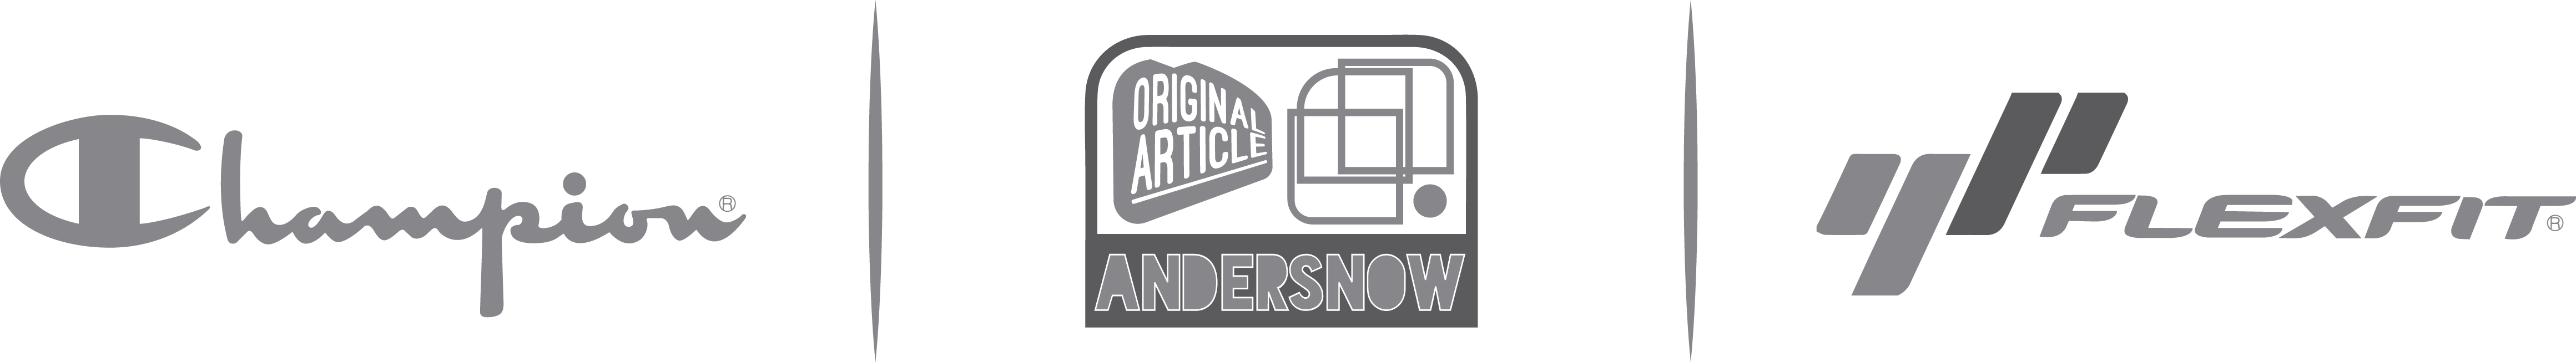 andersnow collaboration champion and flexfit